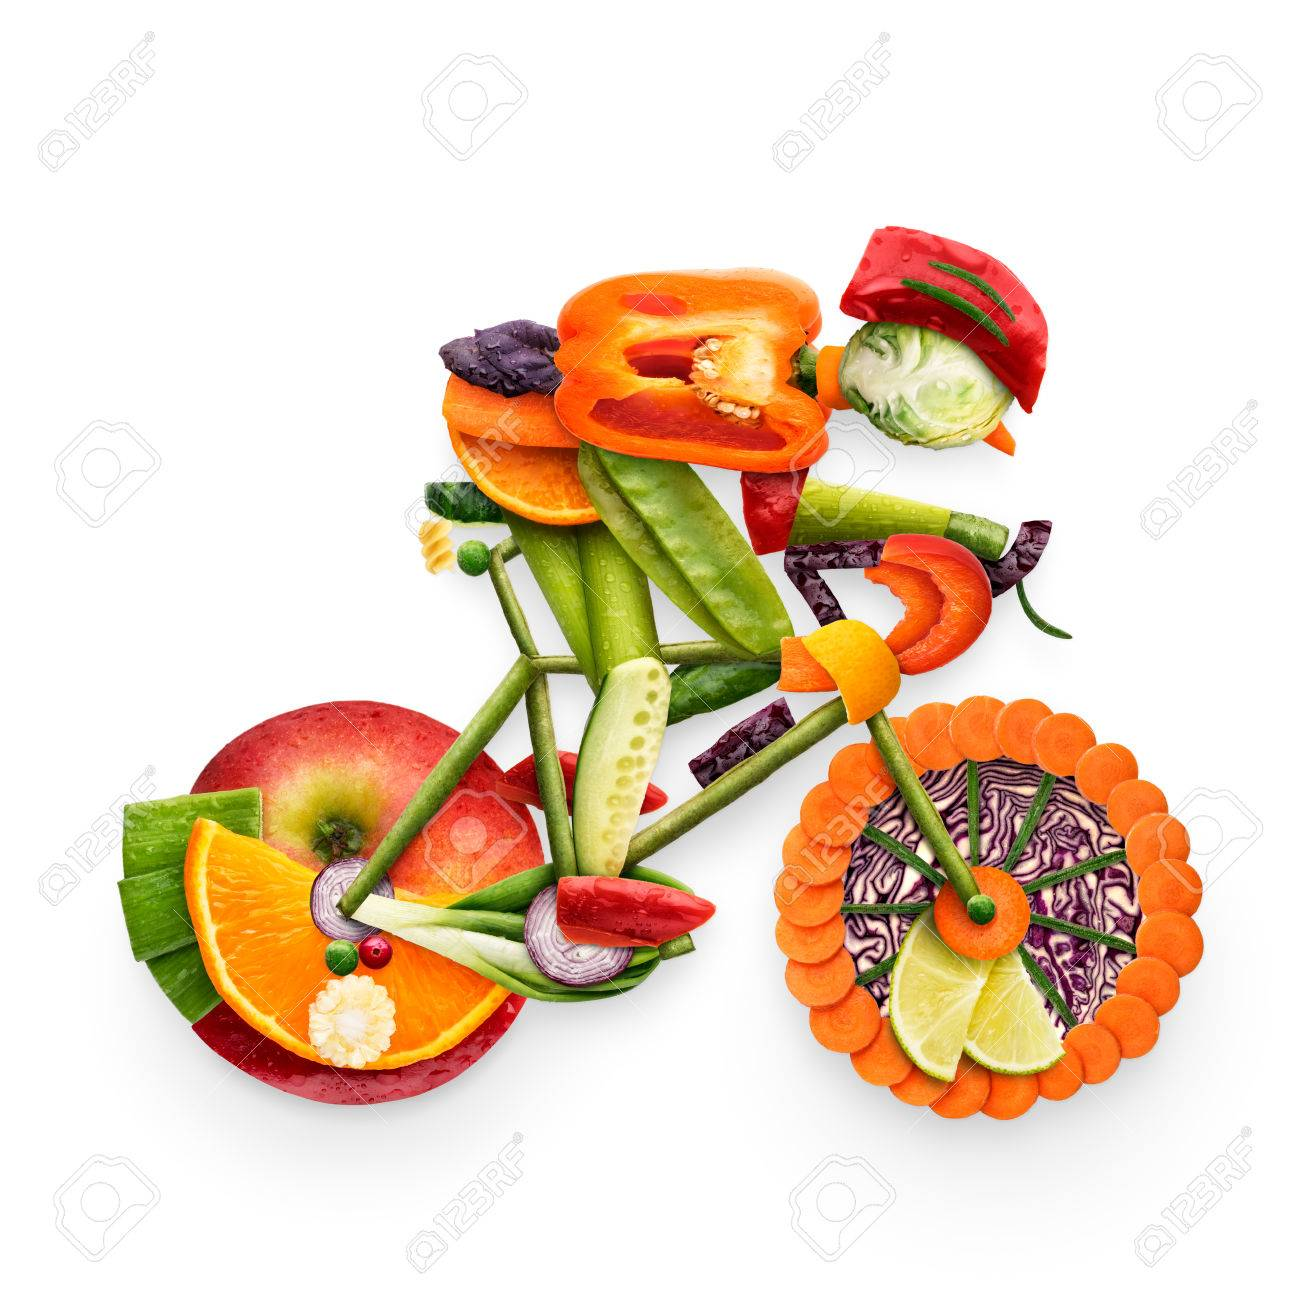 63634780 healthy food concept of a cyclist riding a bike made of fresh vegetables and fruits isolated on whit